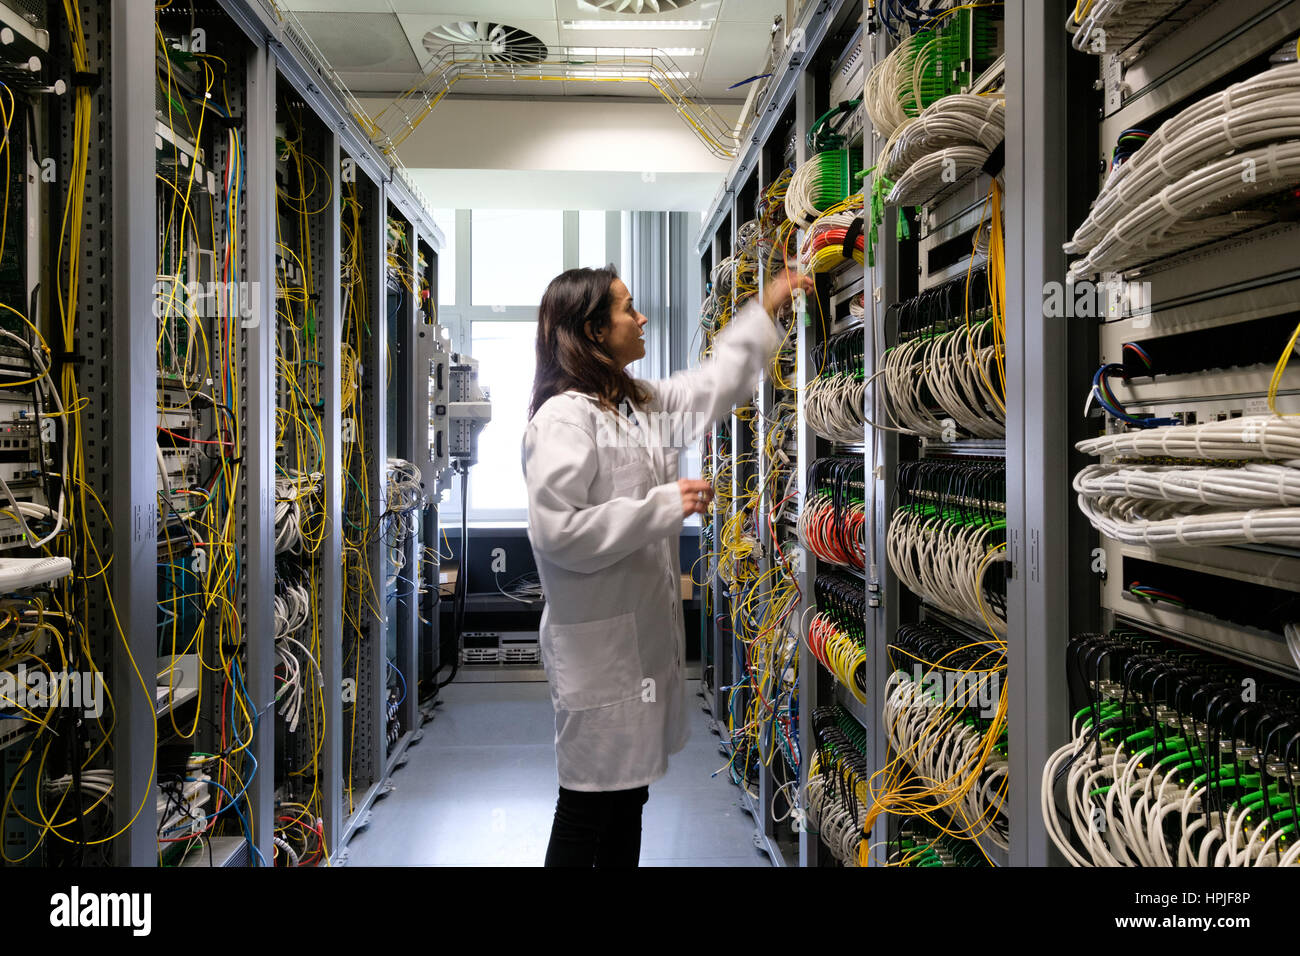 Data center technician working in the server room - Stock Image